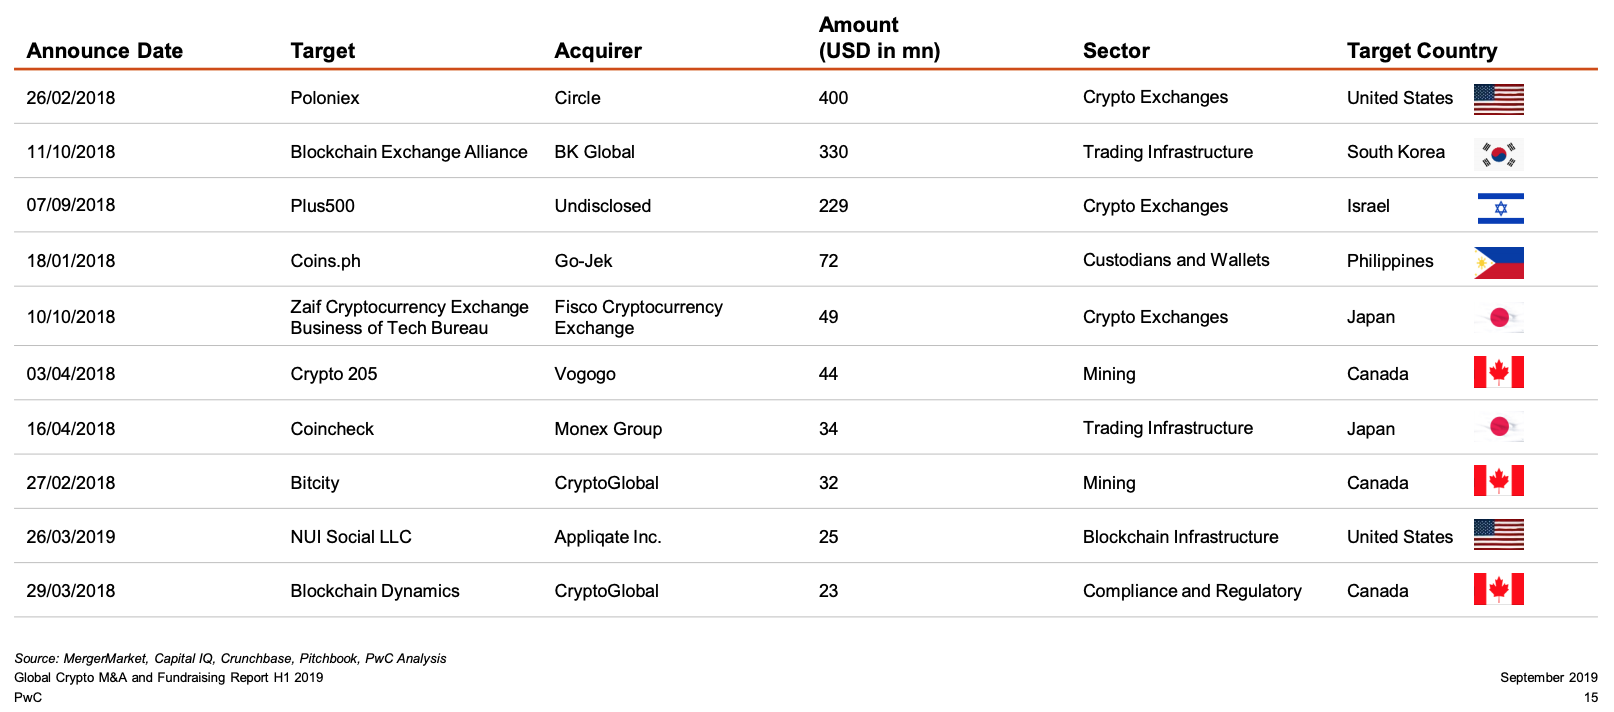 Top 10 Crypto M&A Deals, PwC, September 2019